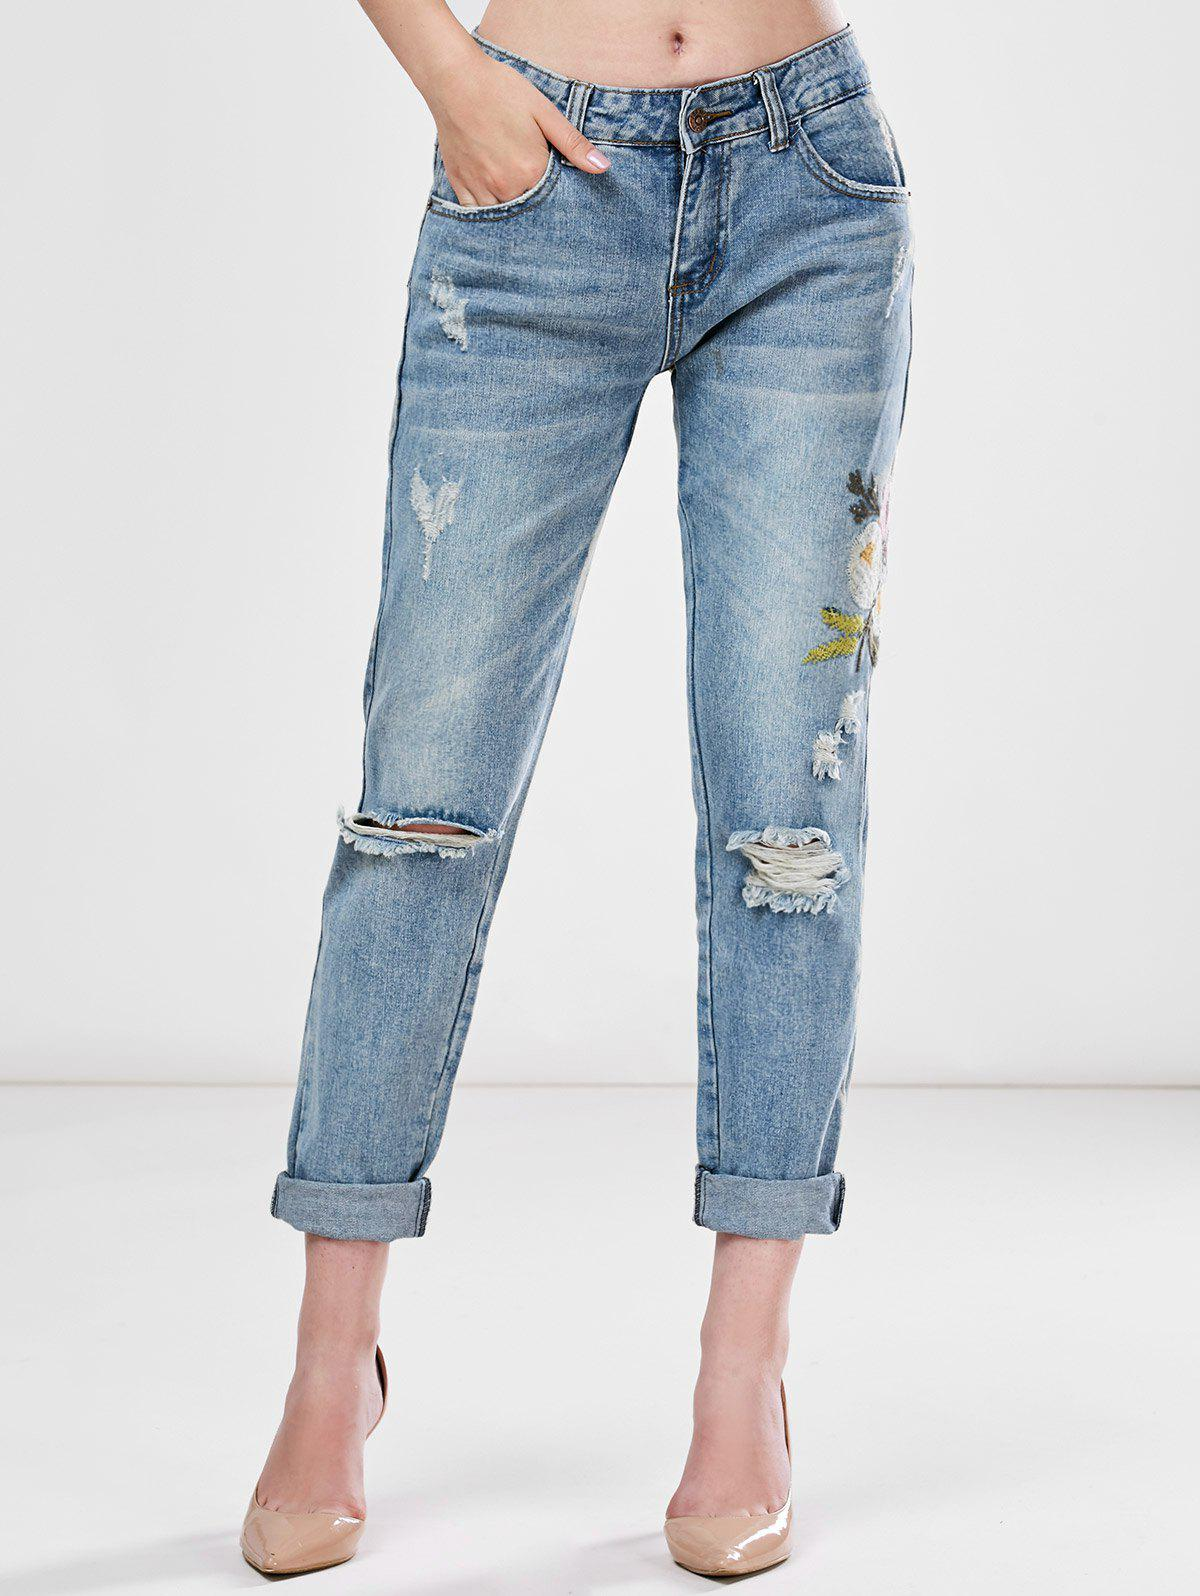 Light Wash Embroidered Ripped Jeans - LIGHT BLUE XL